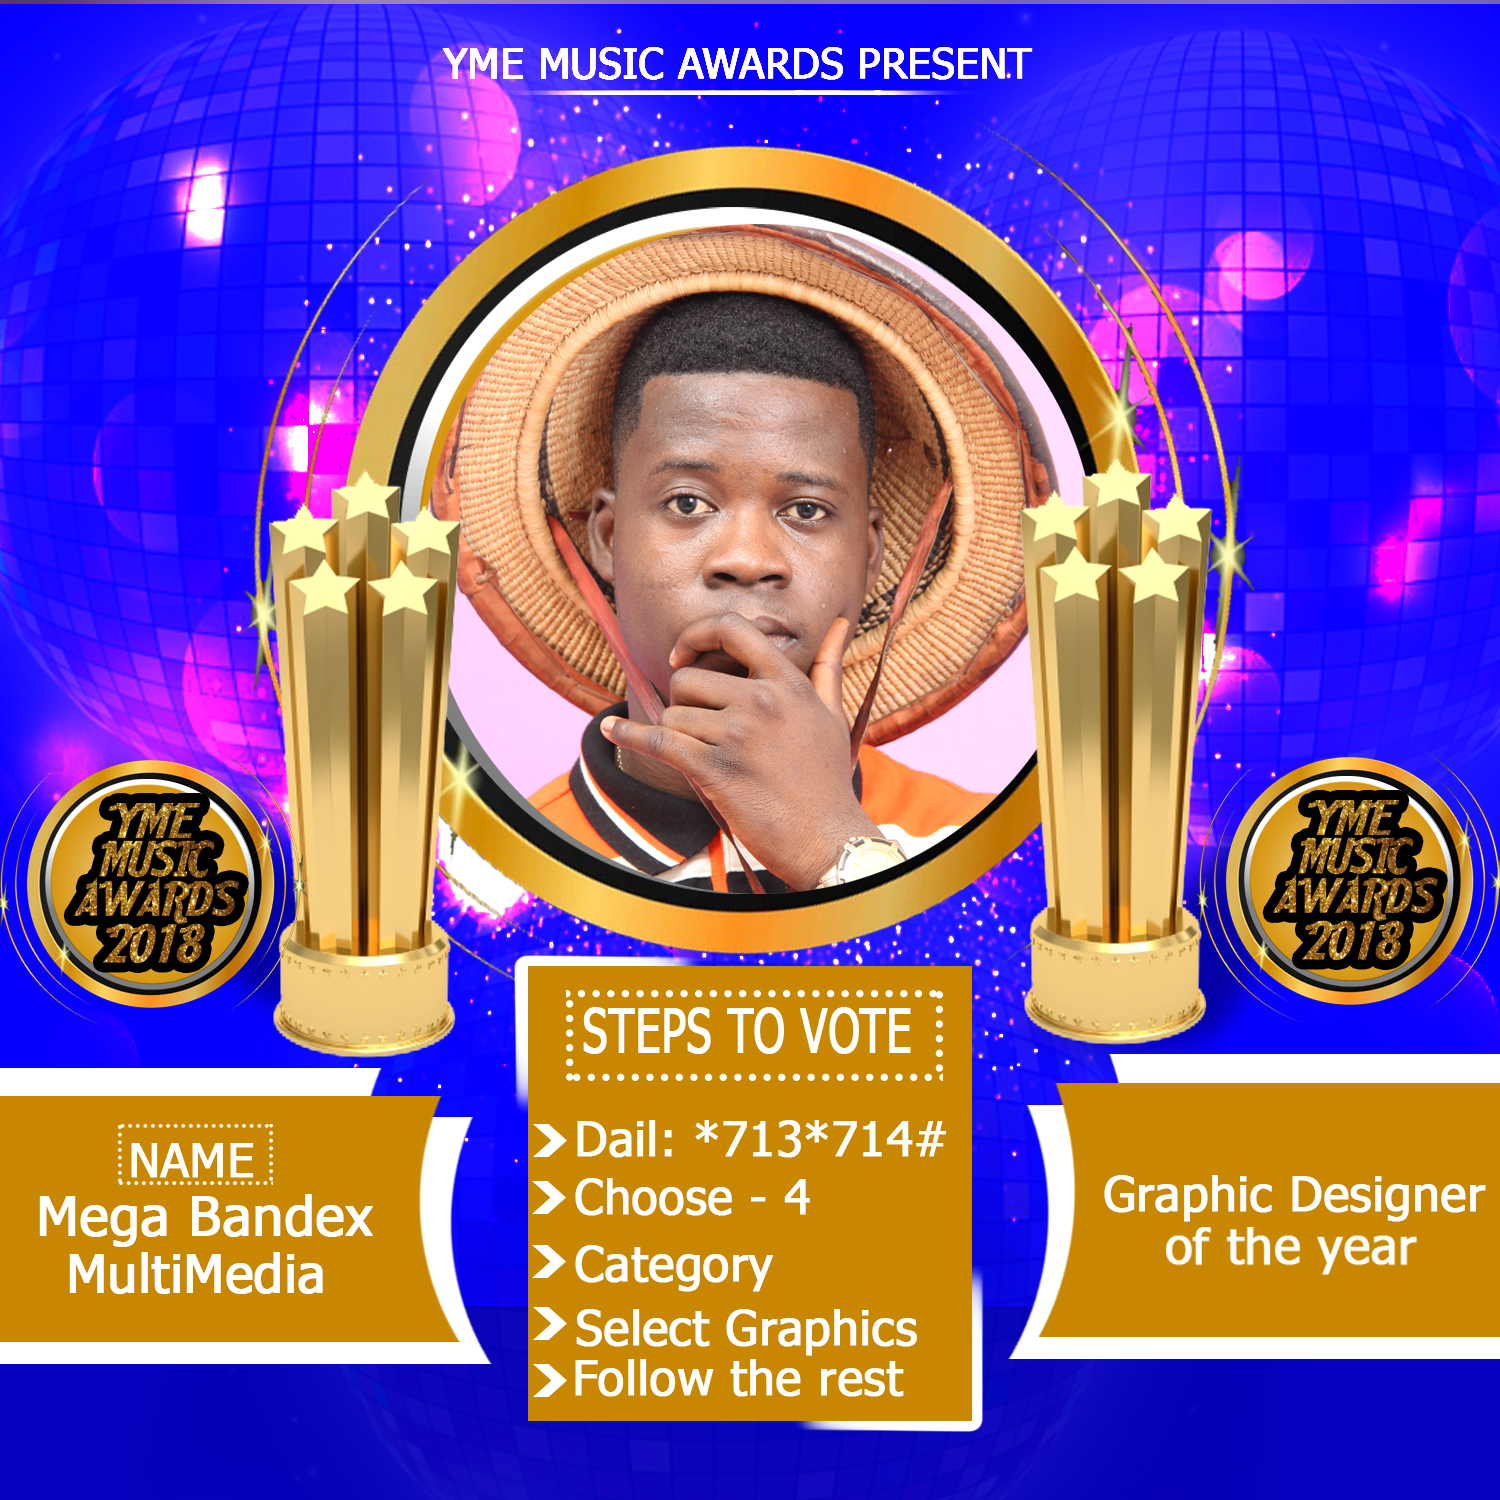 Video: Mega Bandex won Best Graphic Designer and blogger of the year @ the YME AWARDS